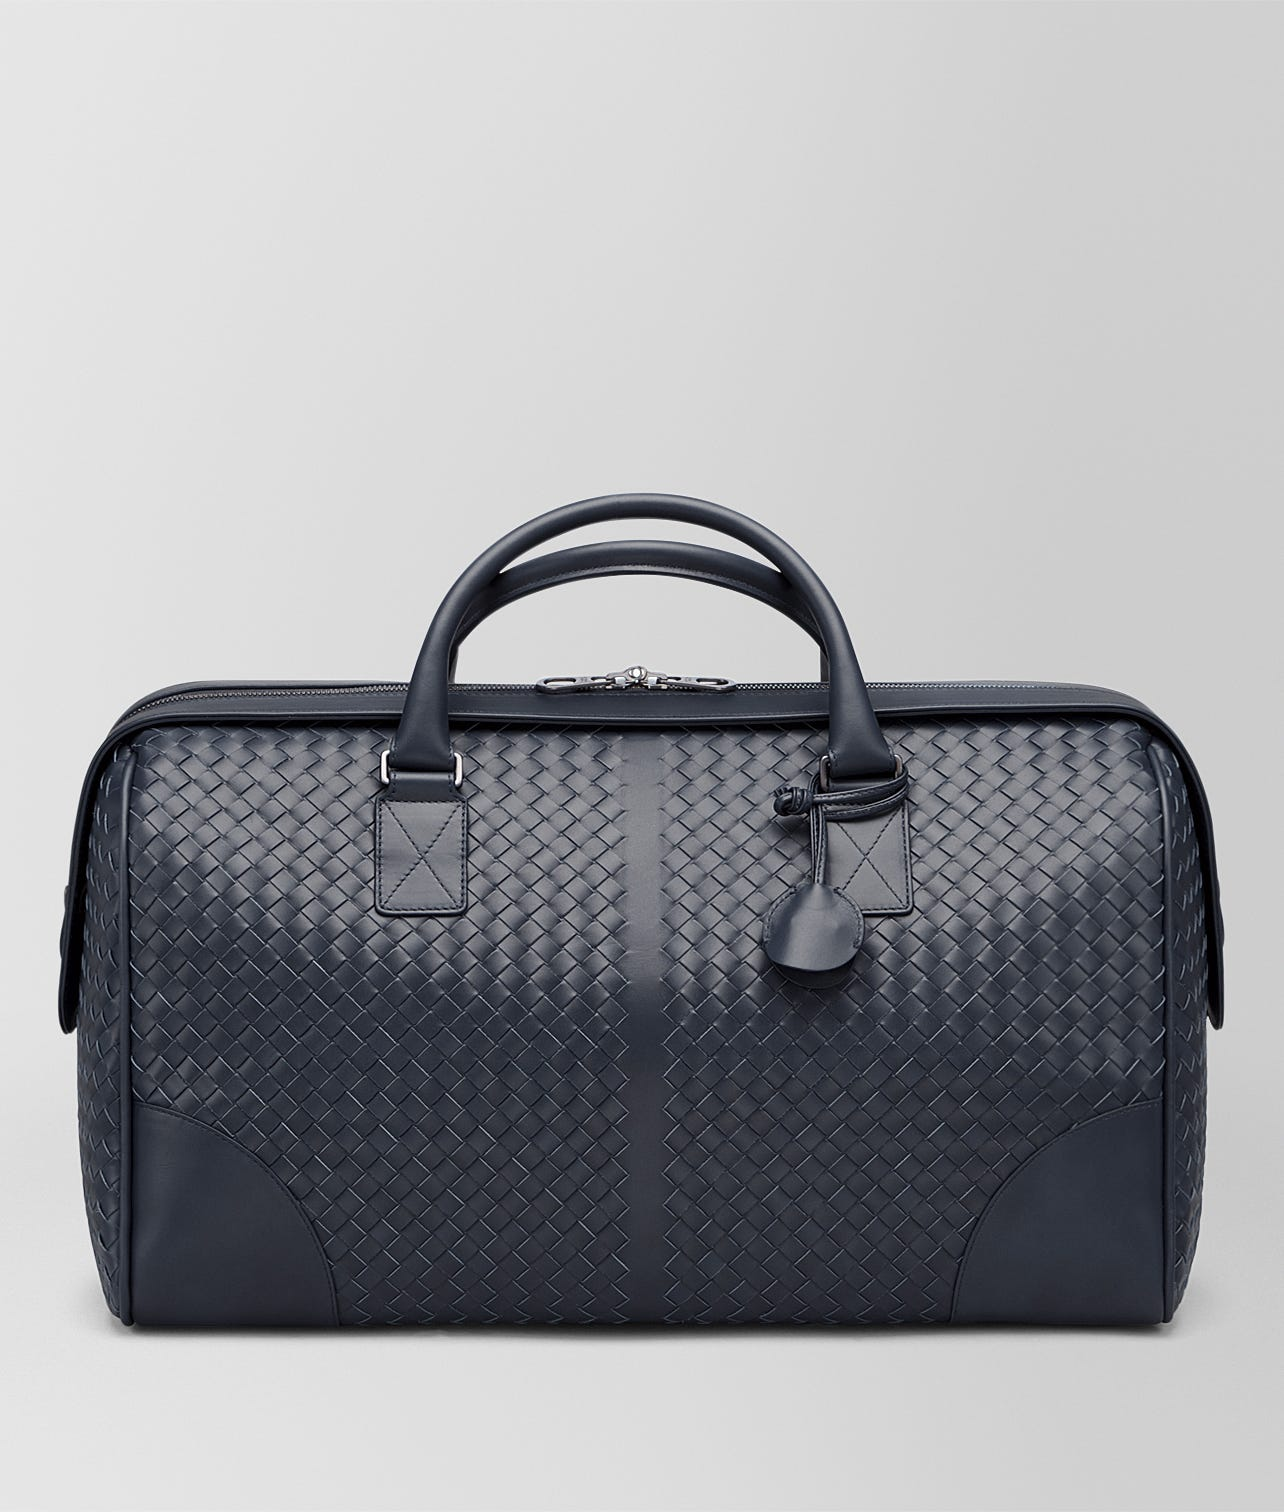 b861f5a1b949 Best Travel Duffel Bags For Labor Day 2018